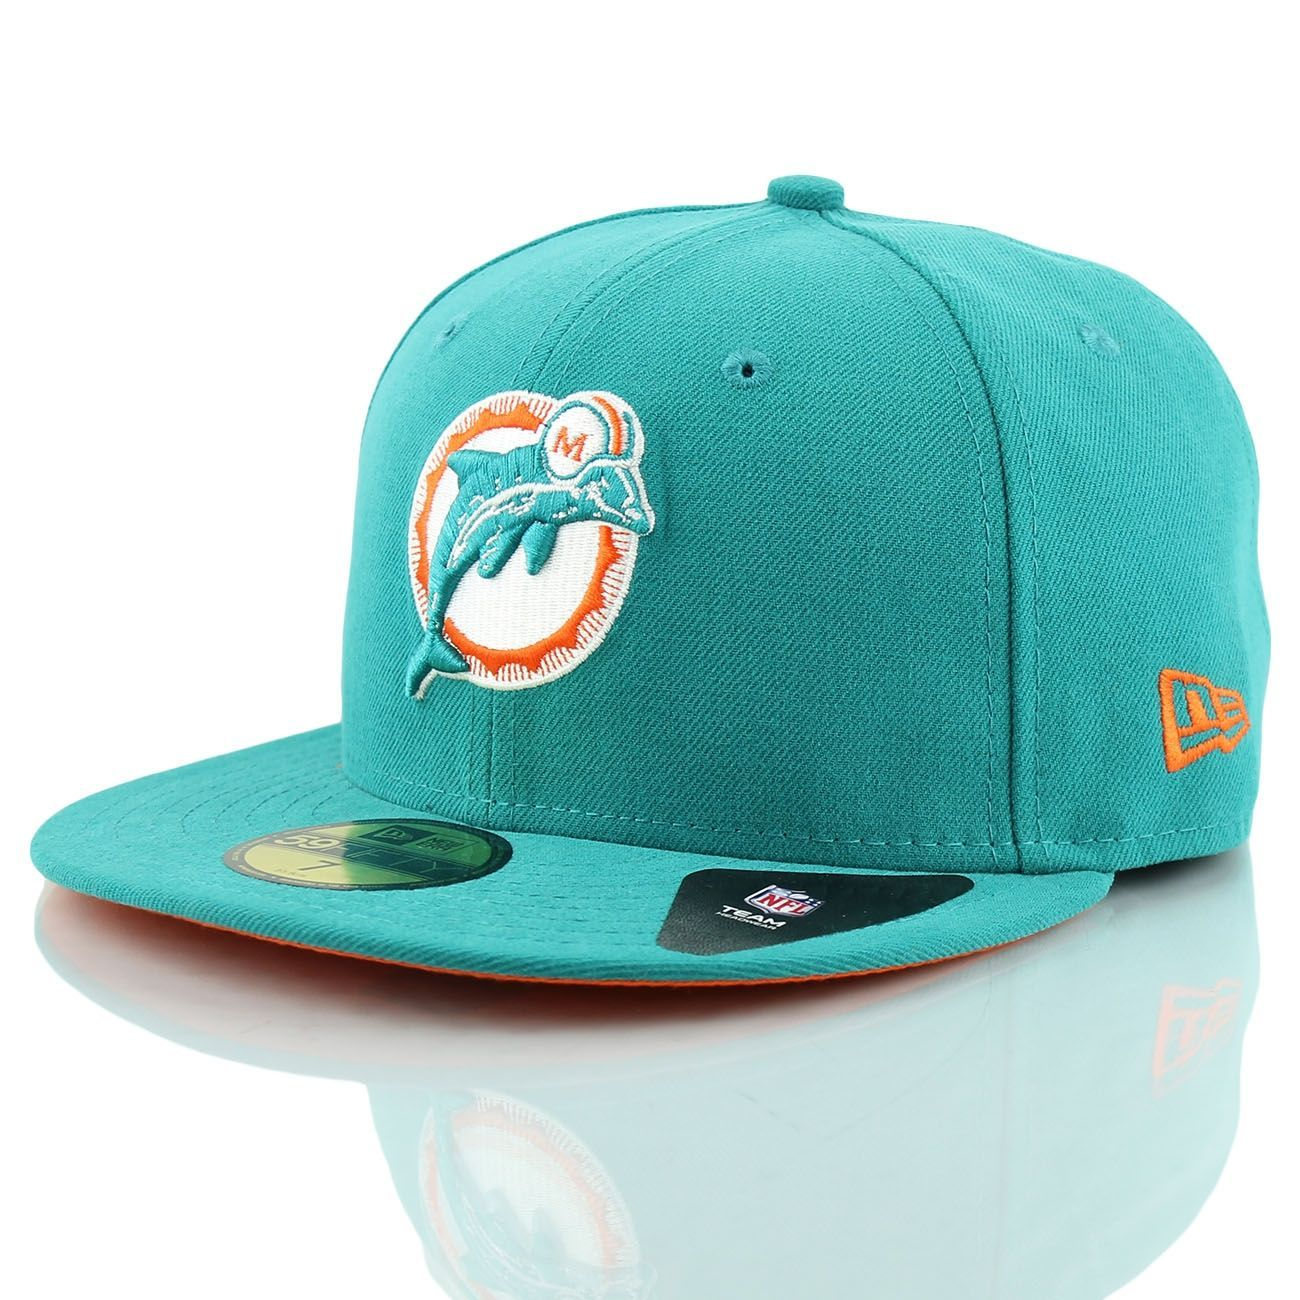 timeless design 3c66c bb1fe New Era Miami Dolphins 59Fifty Fitted SB VII Side Patcher NFL Cap   TAASS.com  Fanshop